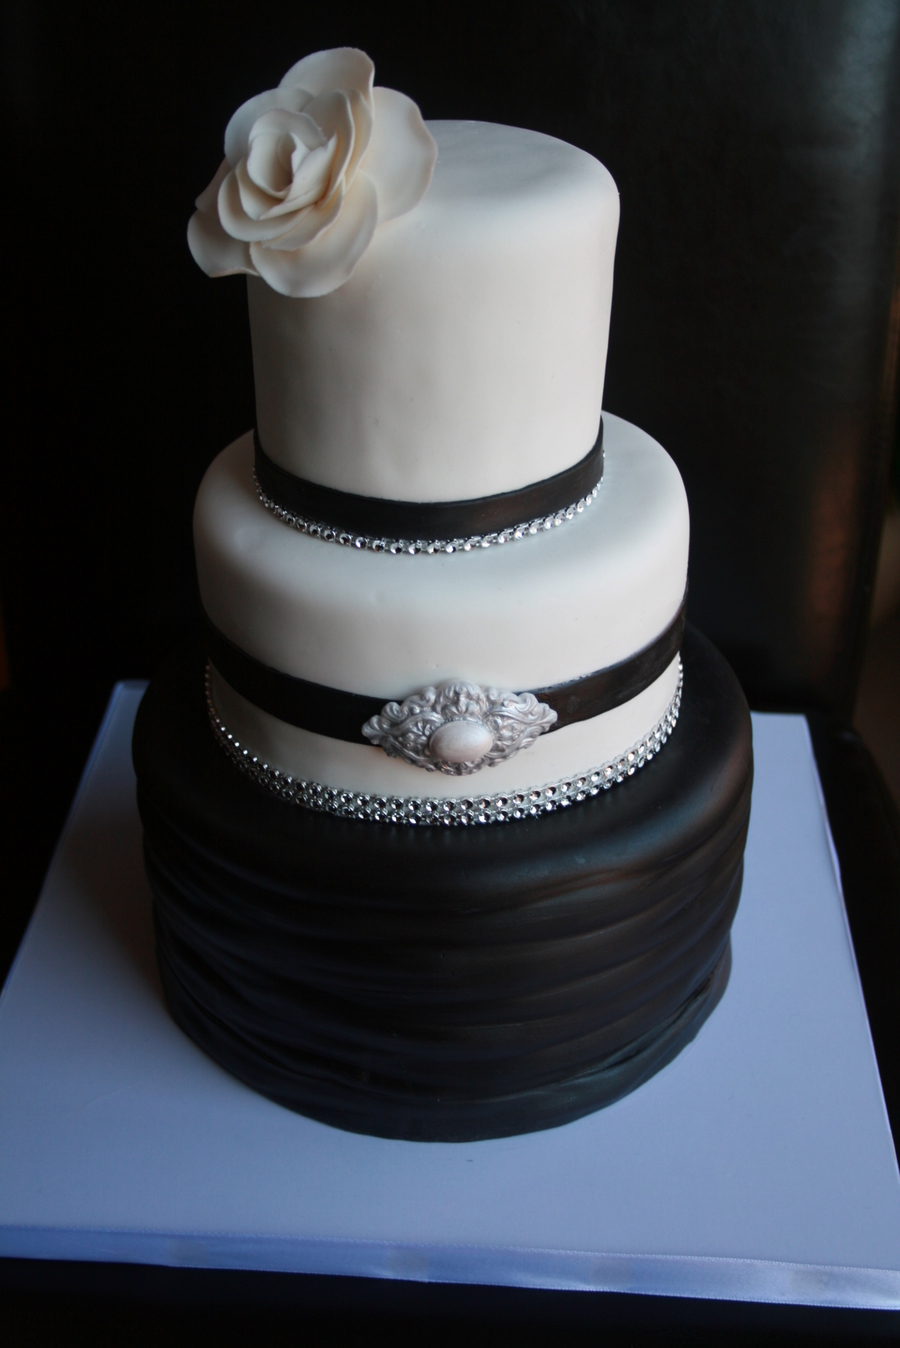 This Classic Black And White Wedding Cake Was For A Small Wedding But It Was Truly One Of The Funnest Cakes I Made That Year on Cake Central